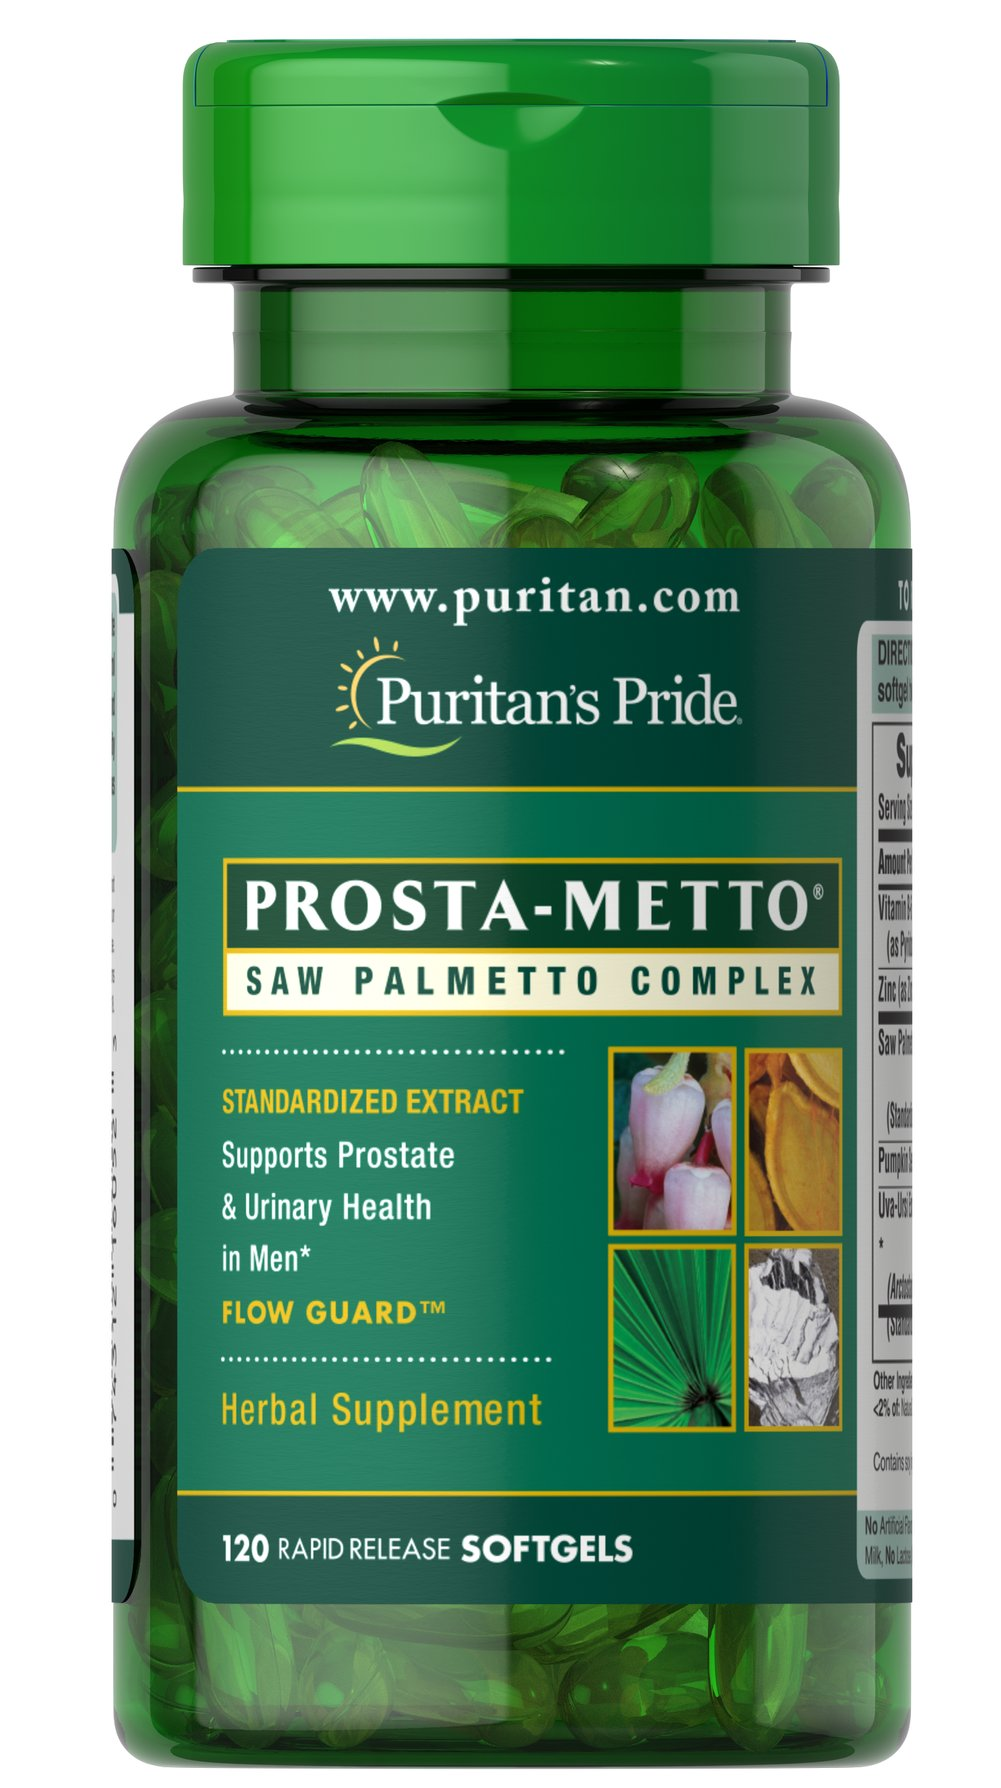 Prosta-Metto® Saw Palmetto Complex For Men <p>Extra Strength Prosta-Metto® softgels deliver 160 mg of standardized Saw Palmetto to support prostate and urinary health in men.** Saw Palmetto is an extract derived from the berry of the Saw Palmetto tree and is the leading herb for men's health.** This formulation also includes Pumpkin Seed Oil and Uva-Ursi, traditional ingredients for men's health, plus Zinc for the immune system.** </p> 120 Softgels  $14.99